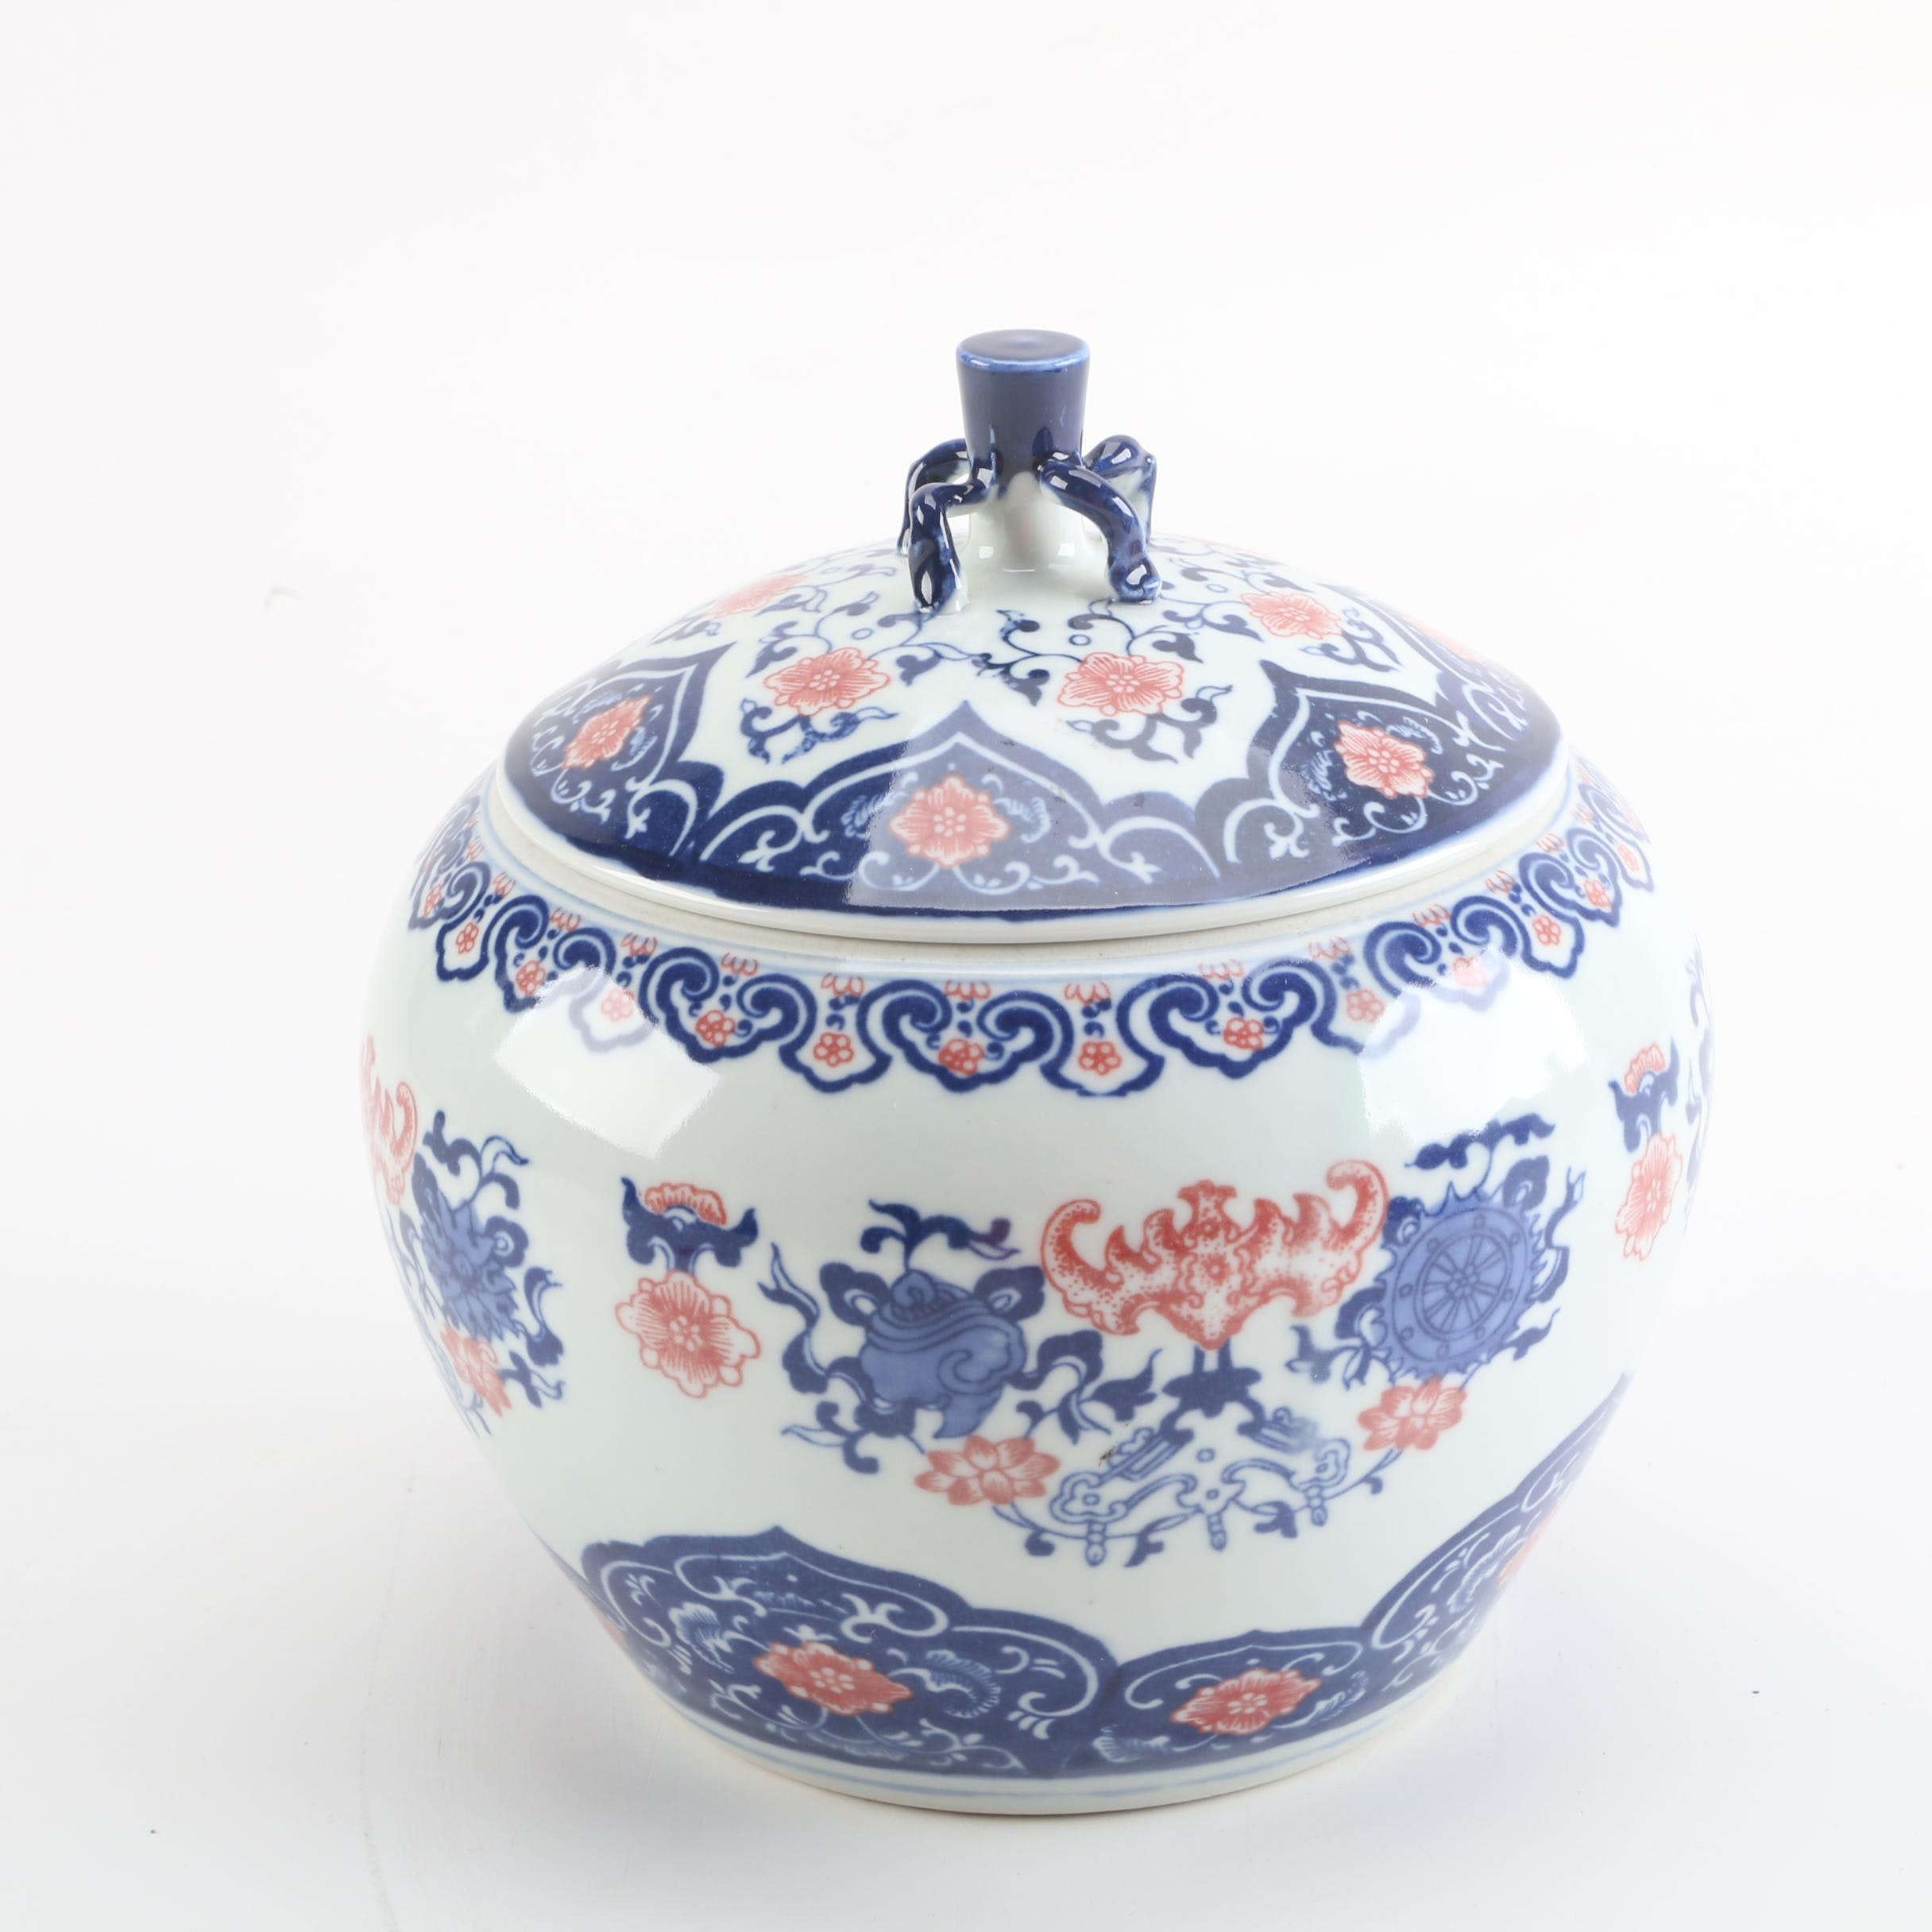 Japanese Imari Hand-Painted Lidded Porcelain Jar